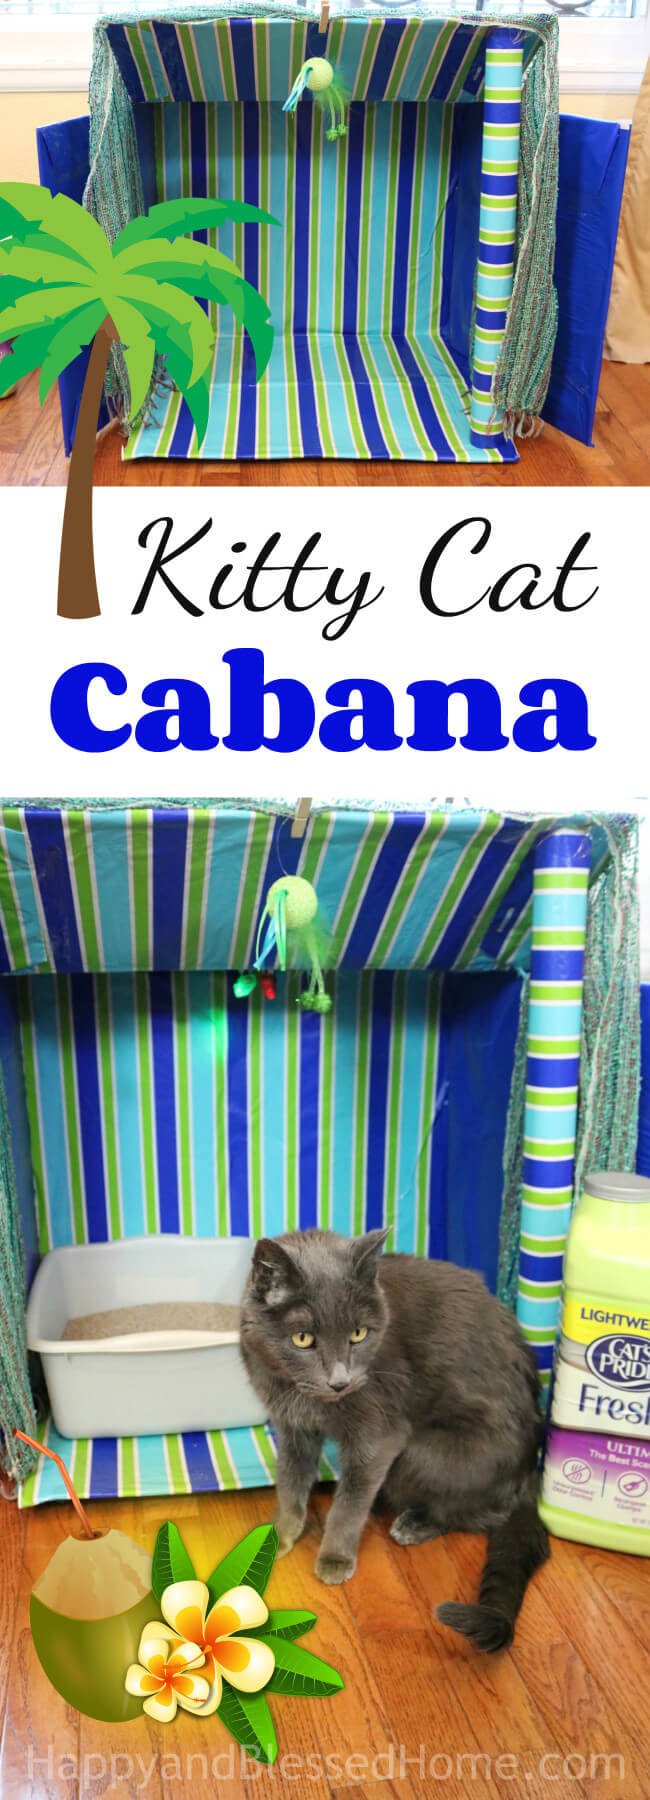 A clever shelter for your cat - A Kitty Cat Cabana